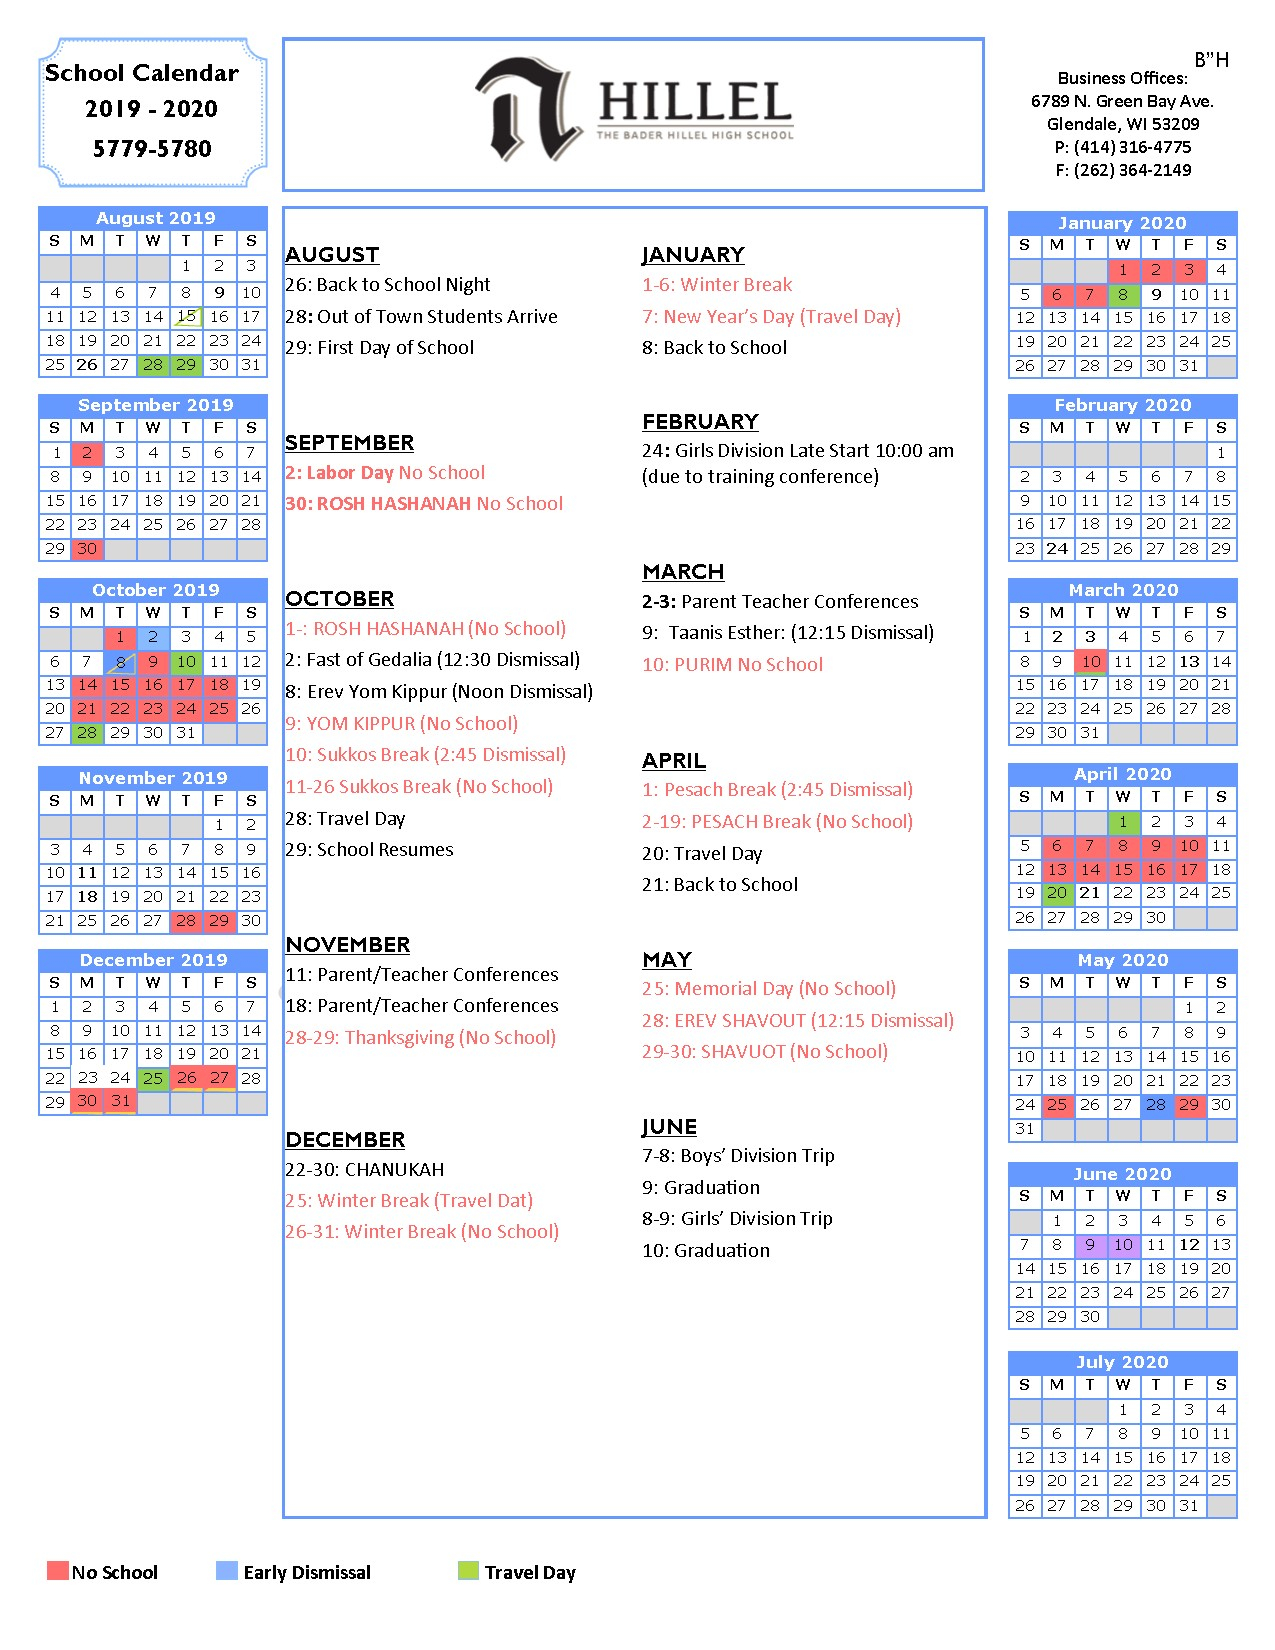 2019 20 School Calendar - Bader Hillel High With School District 93 Calendar For 2020  2021